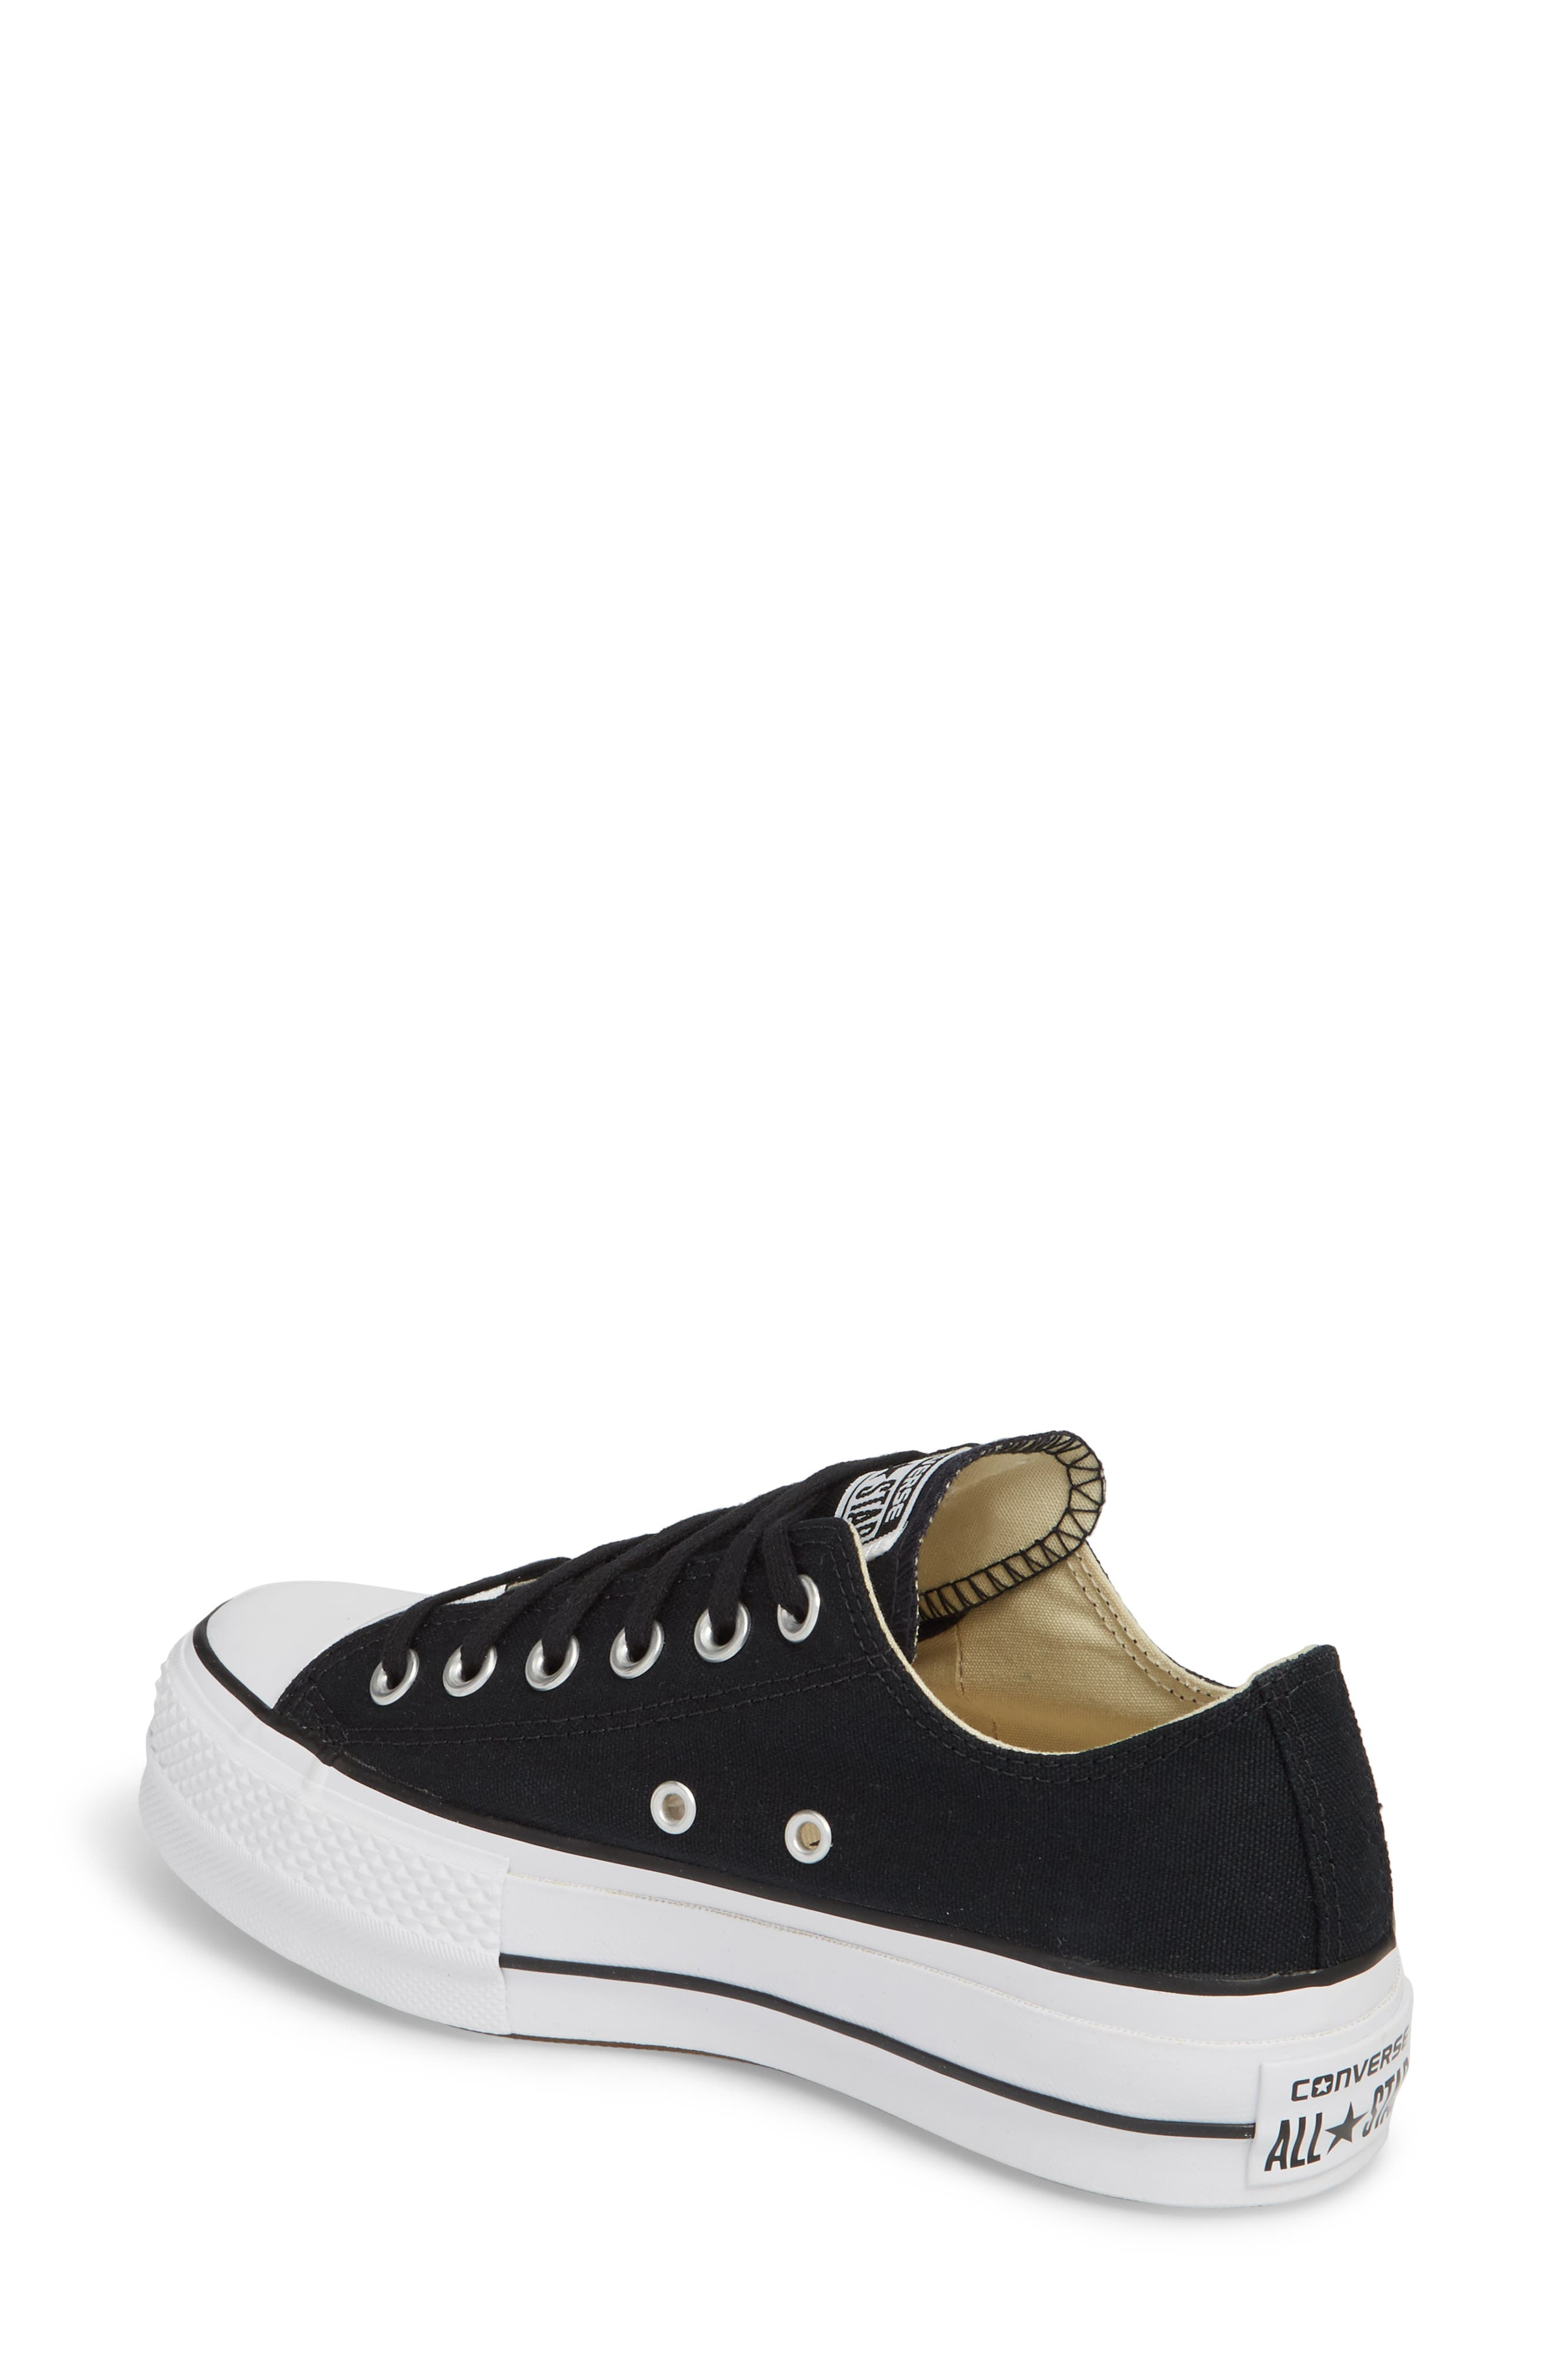 Chuck Taylor<sup>®</sup> All Star<sup>®</sup> Platform Sneaker,                             Alternate thumbnail 2, color,                             BLACK/ WHITE/ WHITE